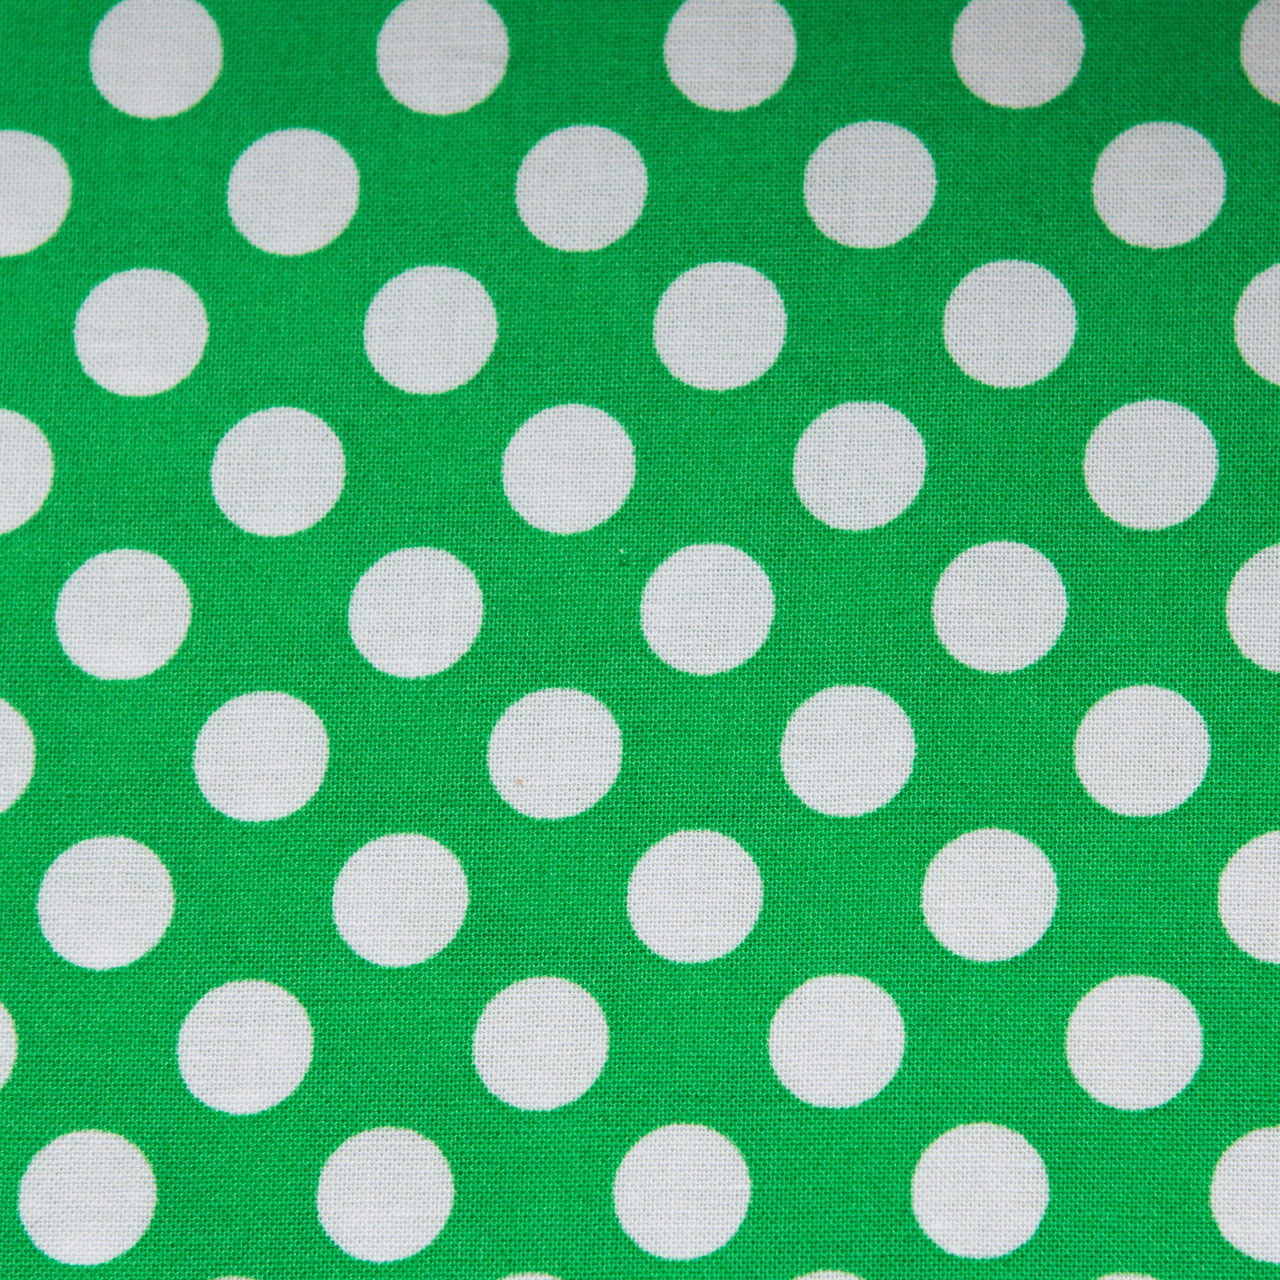 Mentos print